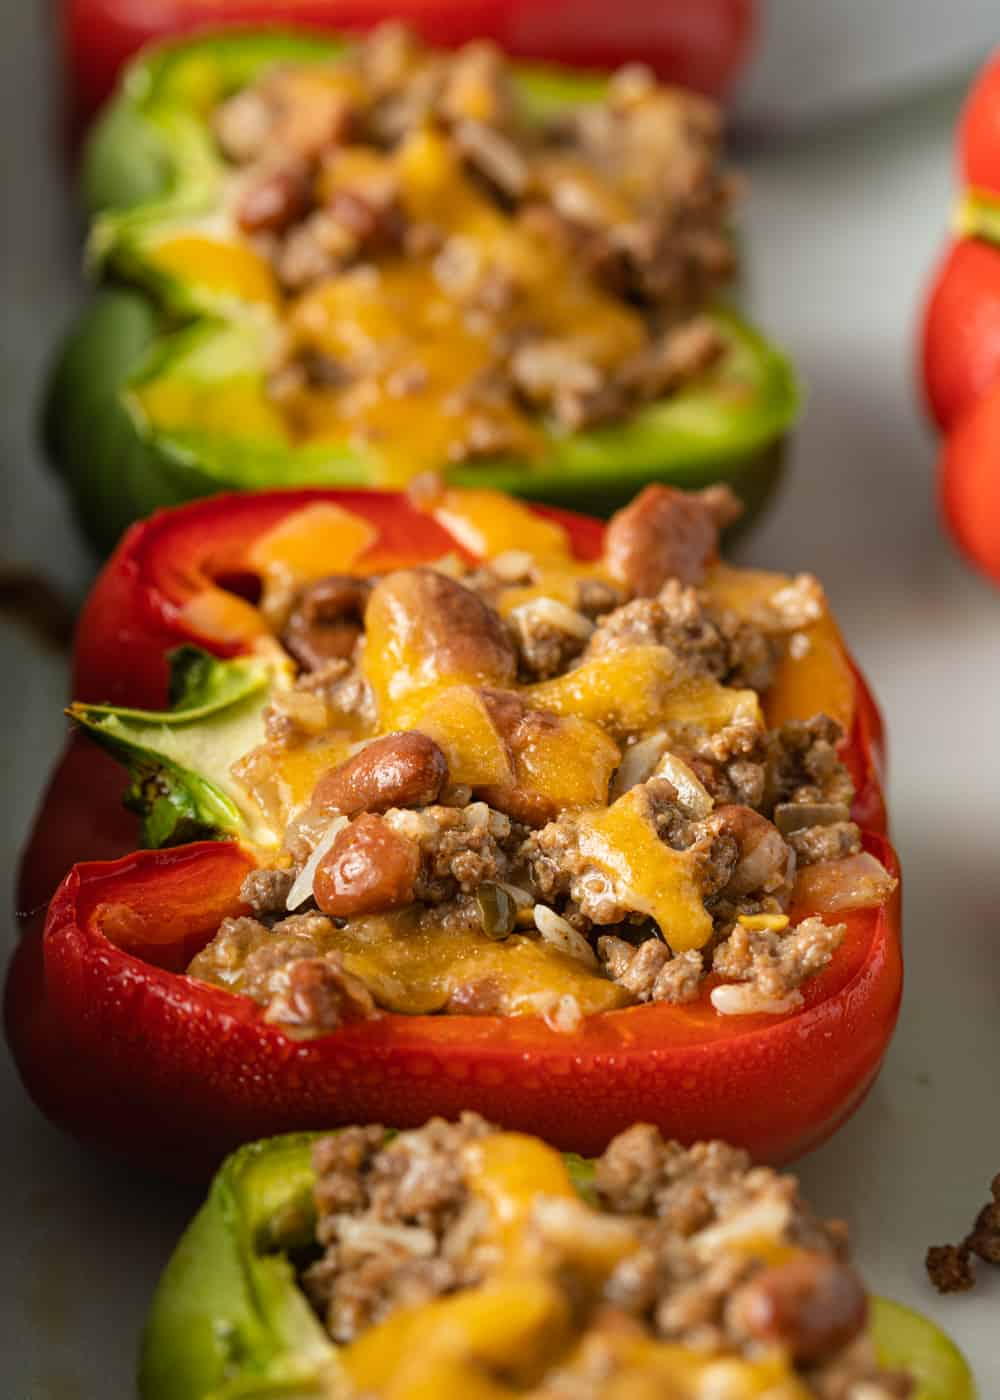 red and green bell pepper halves with filling of ground beef, beans, and cheese